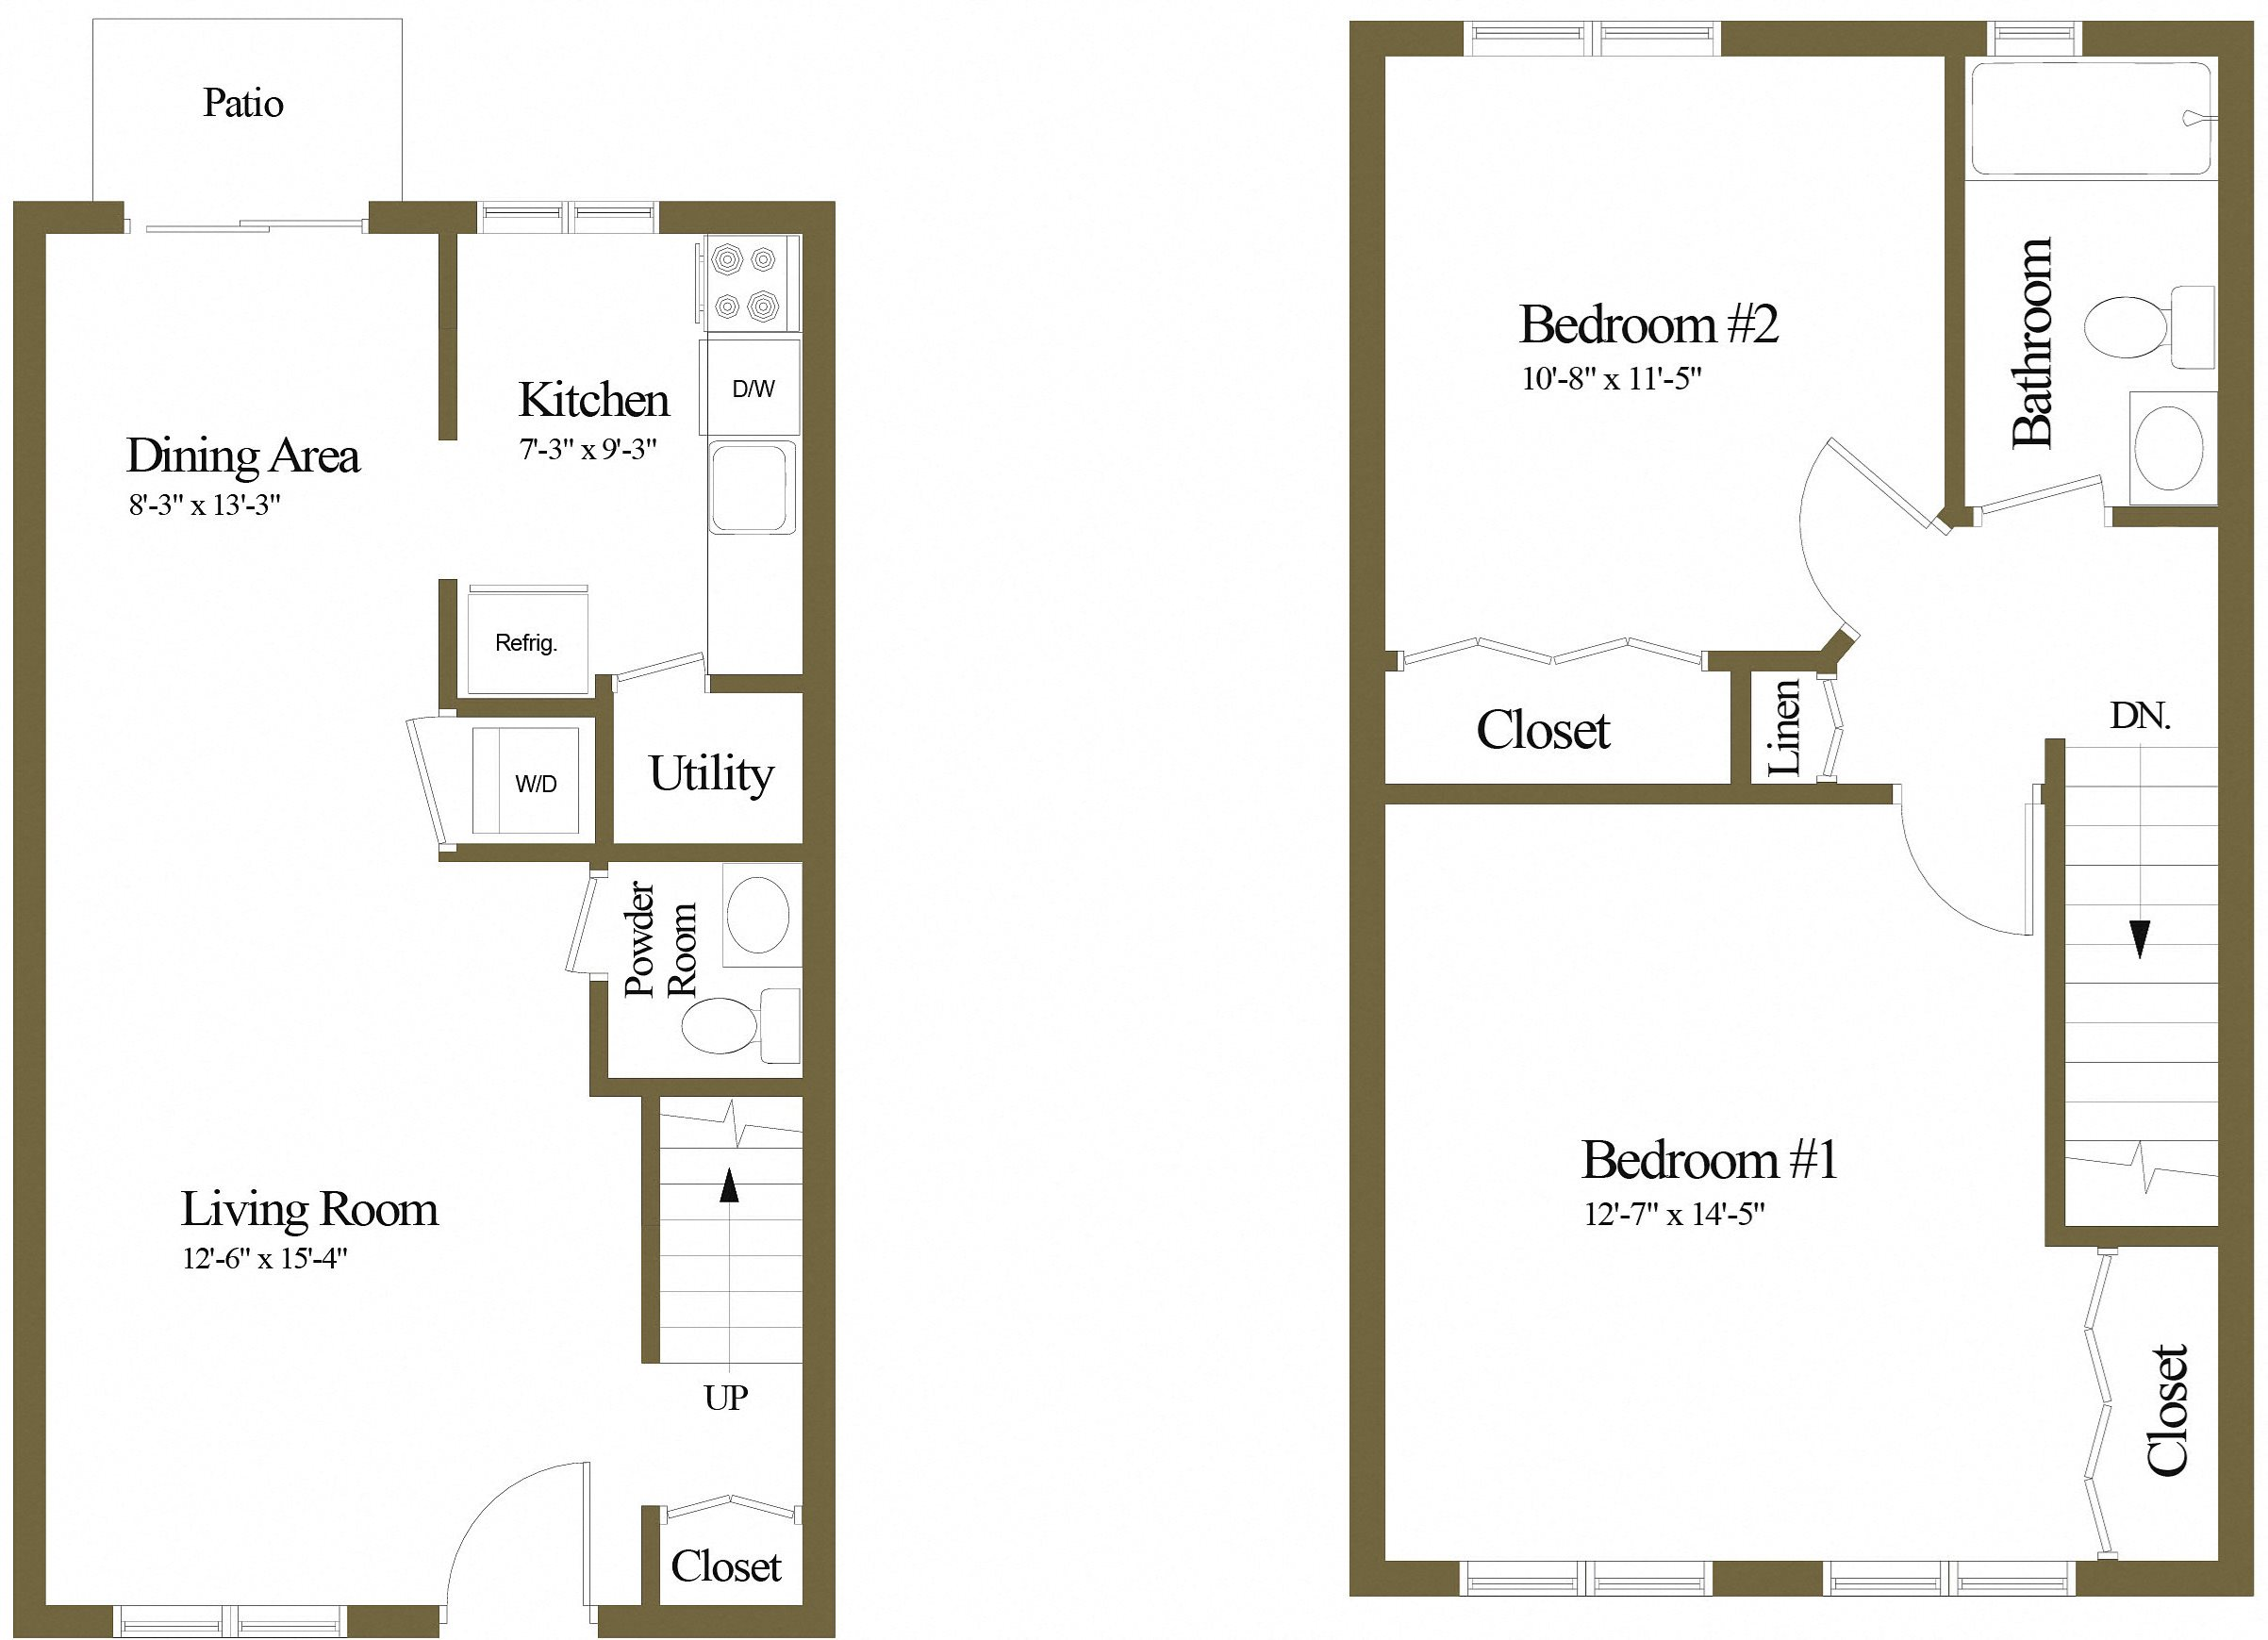 2 Bedrooms 1.5 Bath Townhome Floor Plan 4